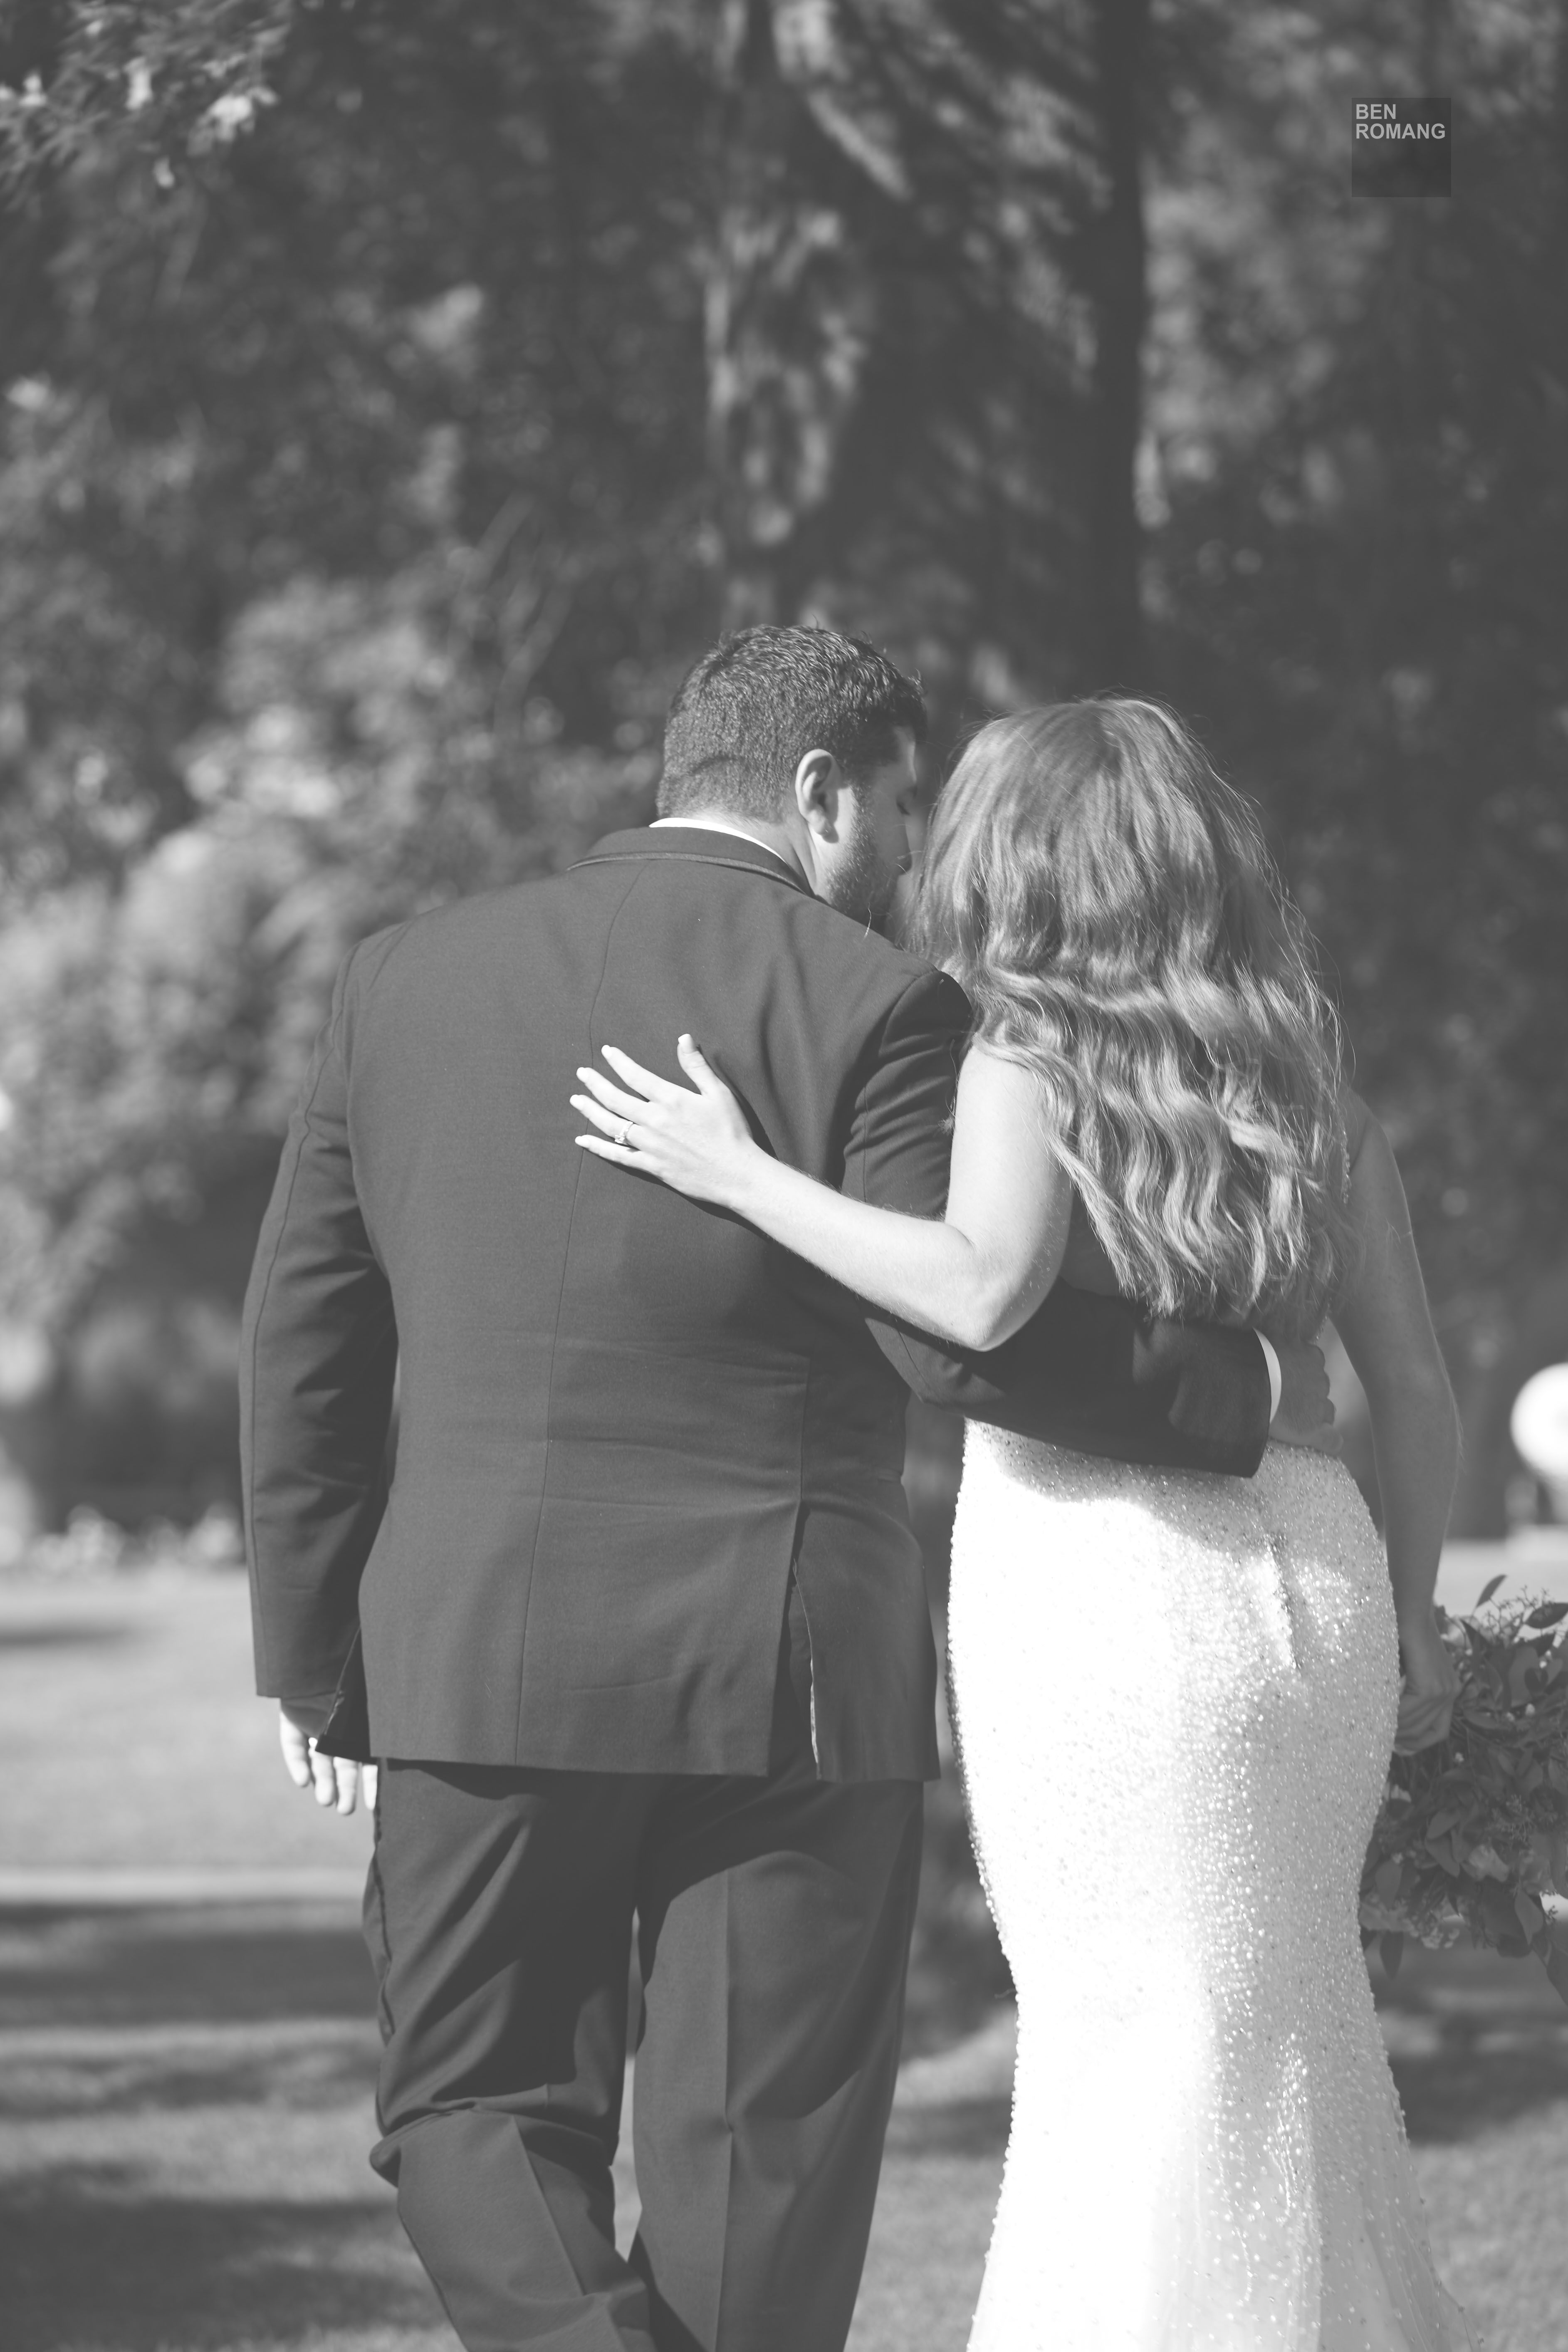 Black and White Outdoor Wedding Portrait of Bride and Groom - Ben Romang Photography